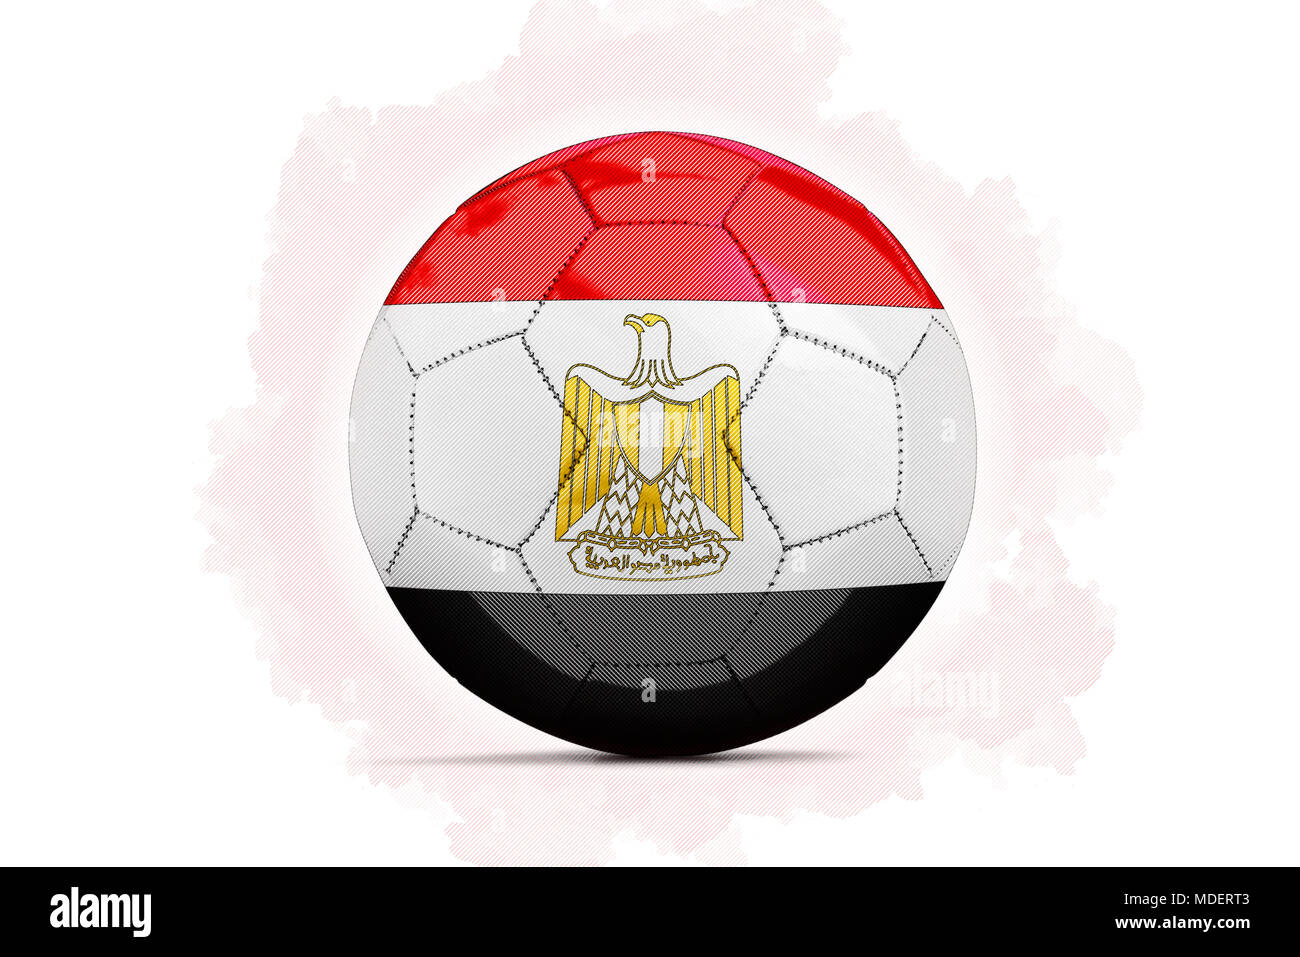 digital artwork sketch of a soccer ball with team flag egypt